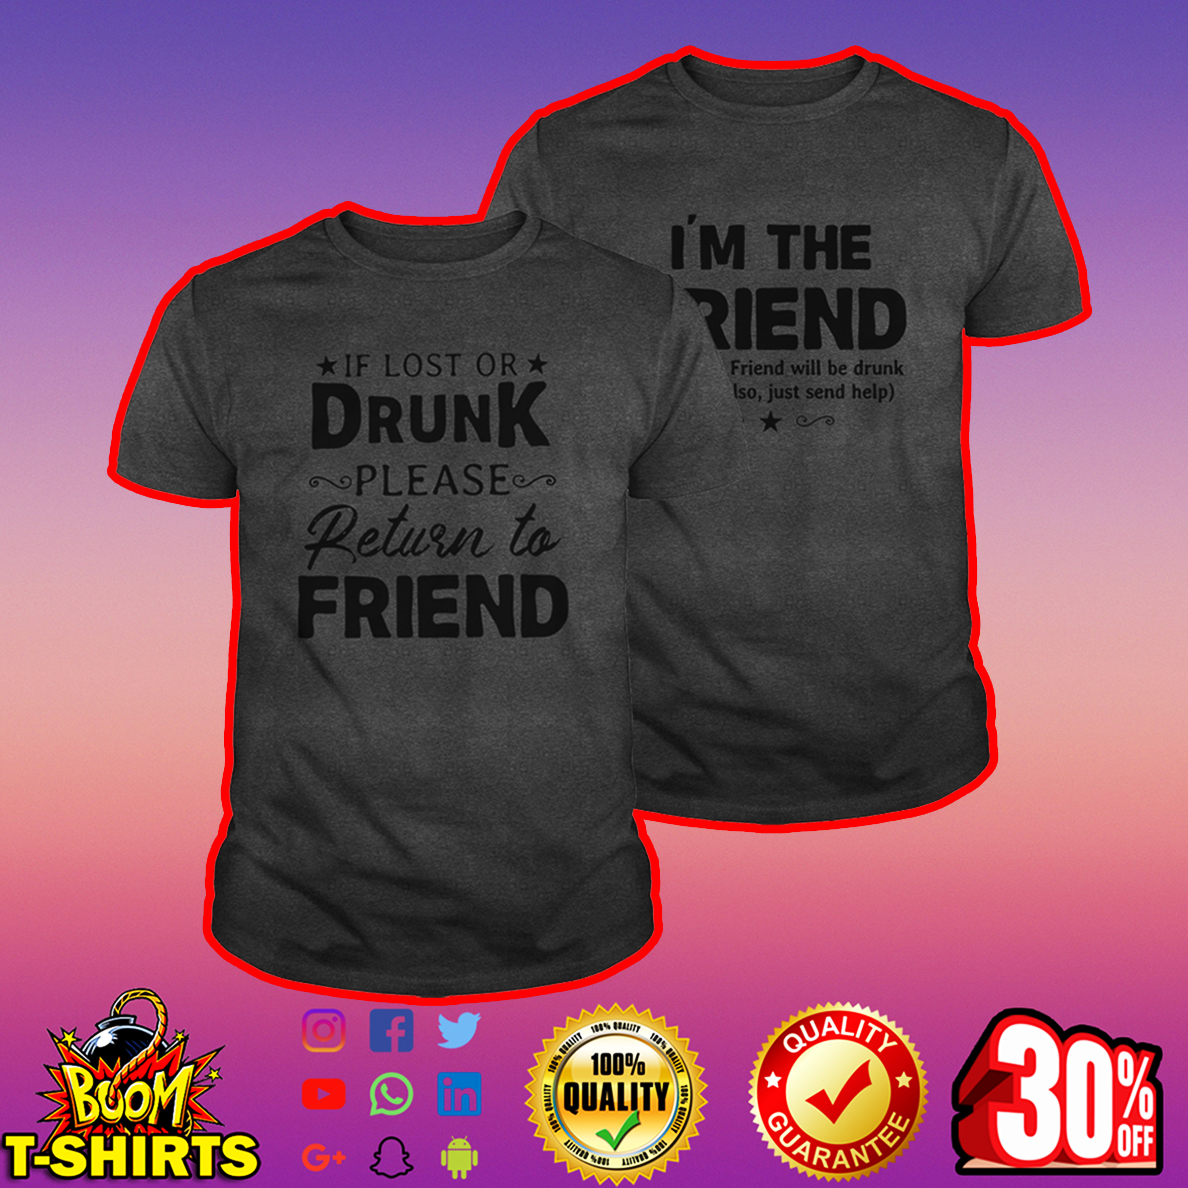 If lost or drunk please return to friend shirt - darkgrey